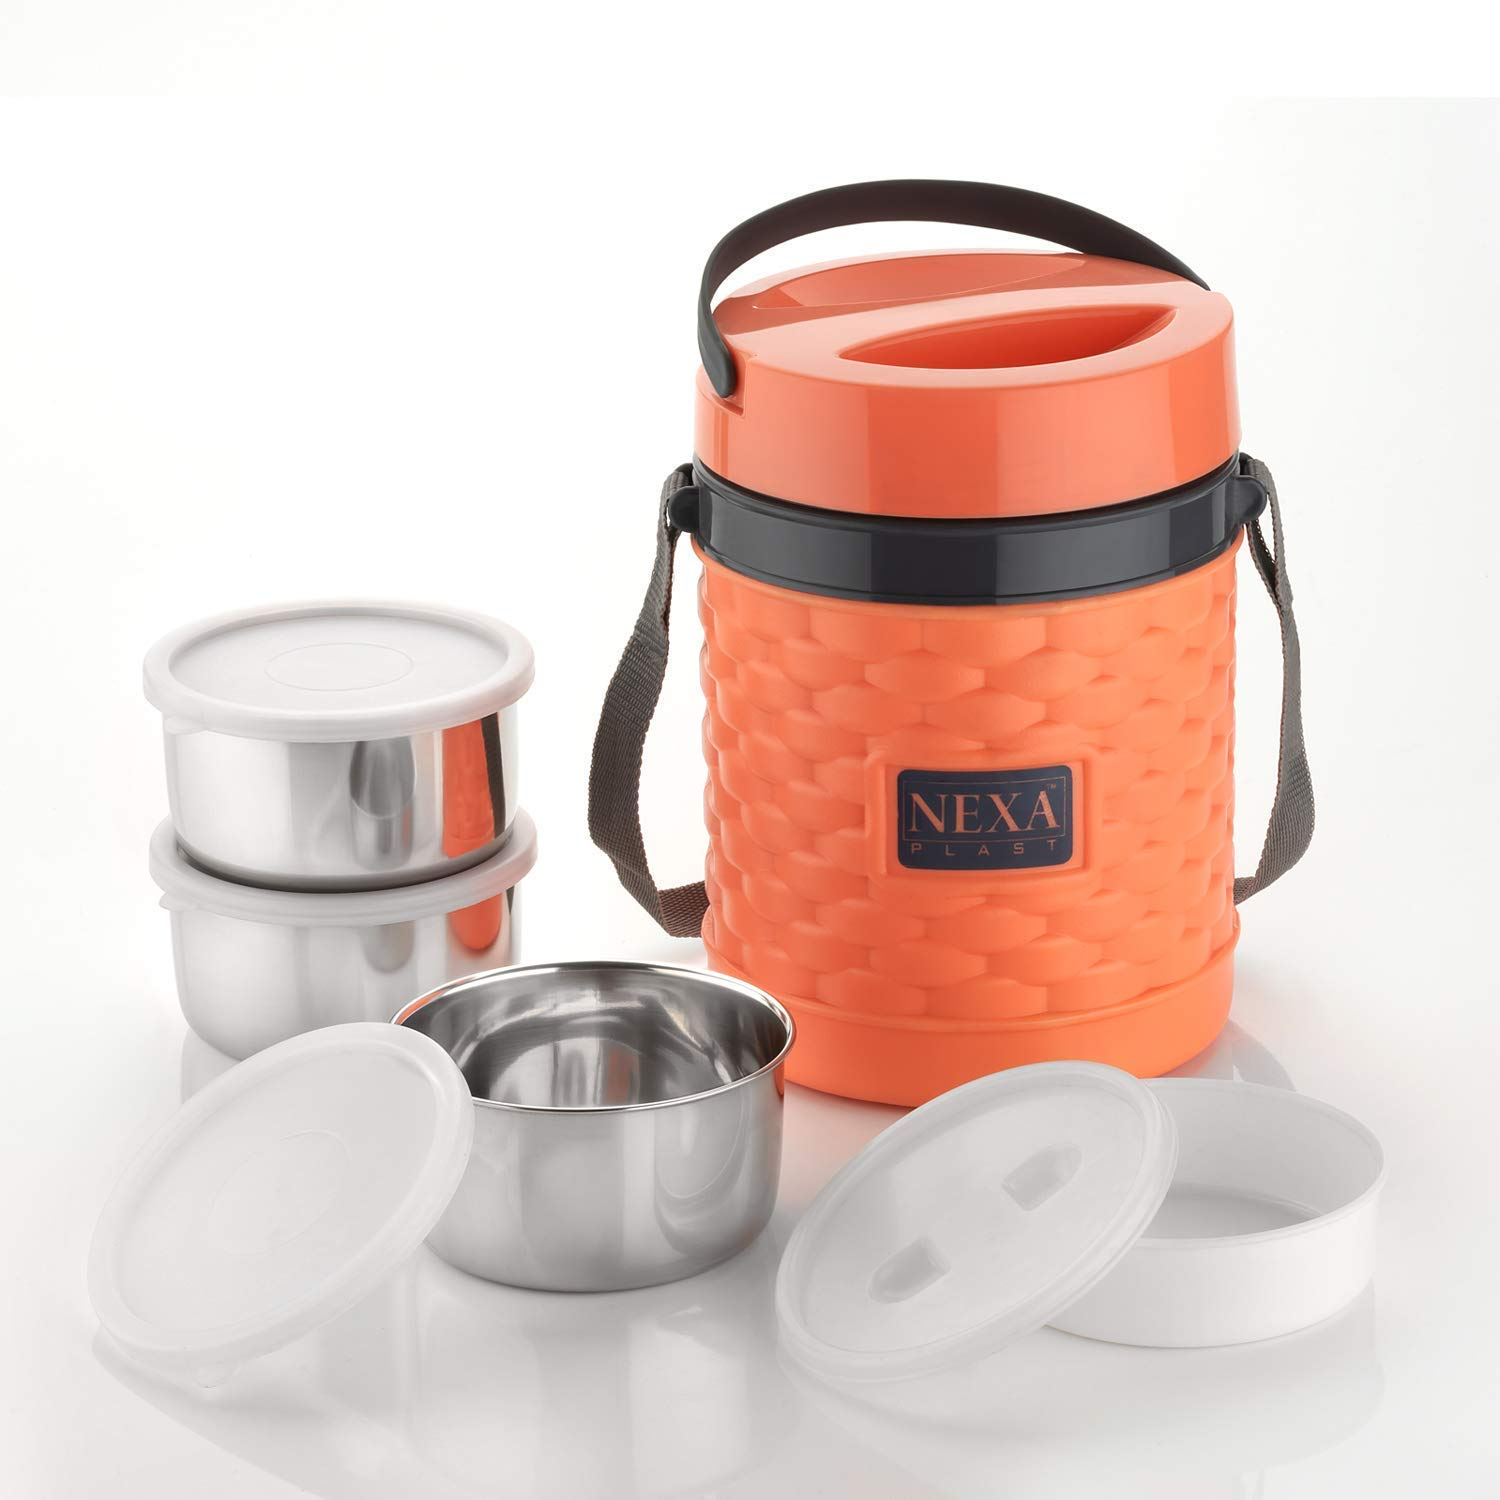 Buy Buyer Nexa Multipurpose 3 in 1 Tiffin Box Home Meal 3 Layer Insulated  Hot Lunch Box with Steel Container for Office